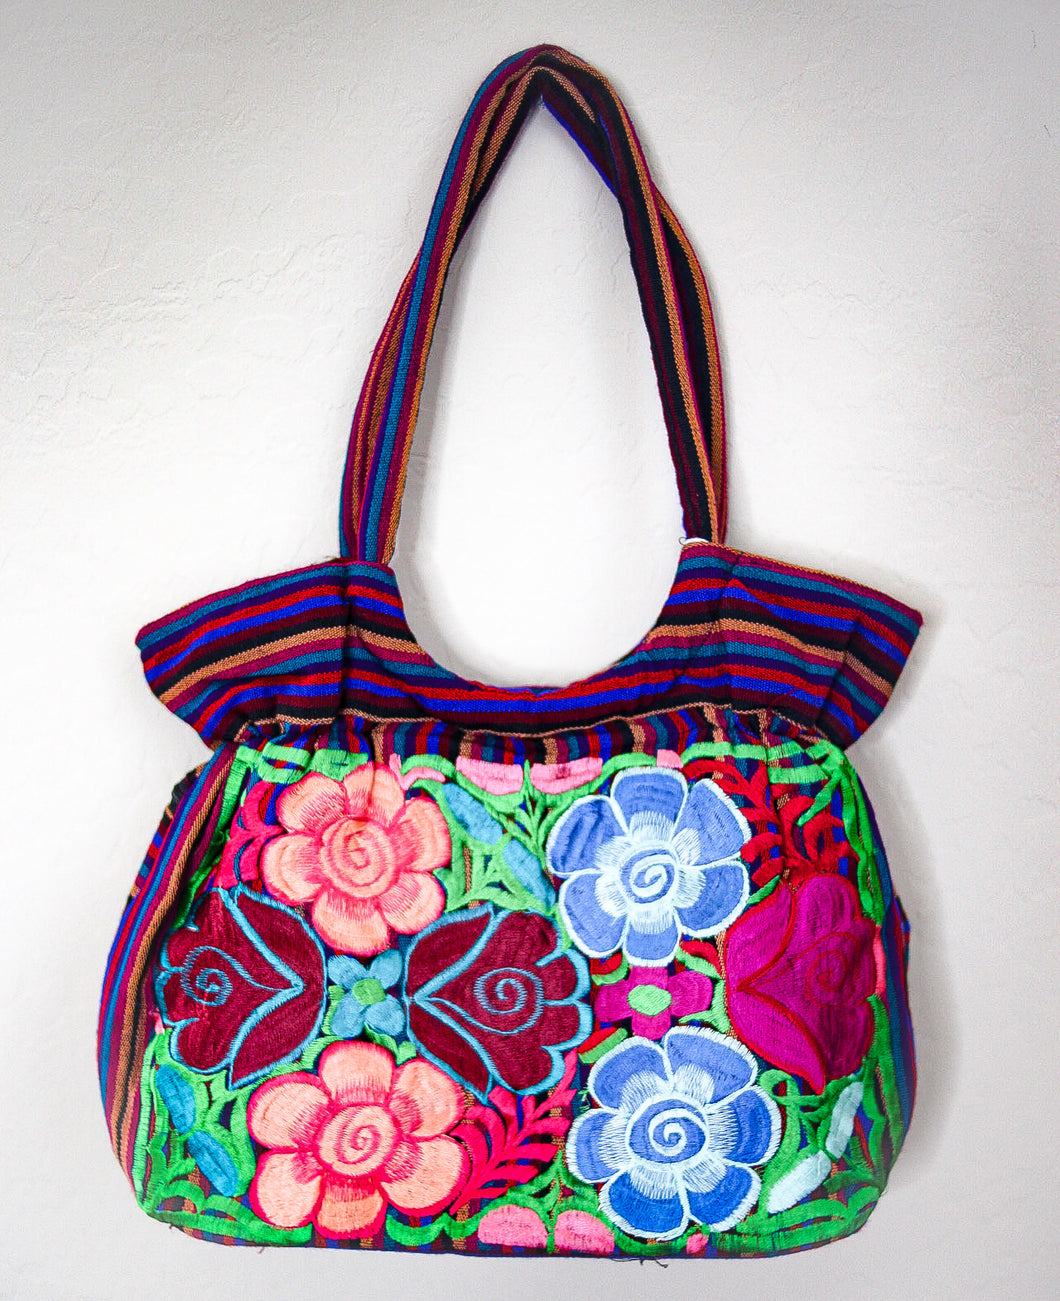 Floral Embroidered Mexican Tote